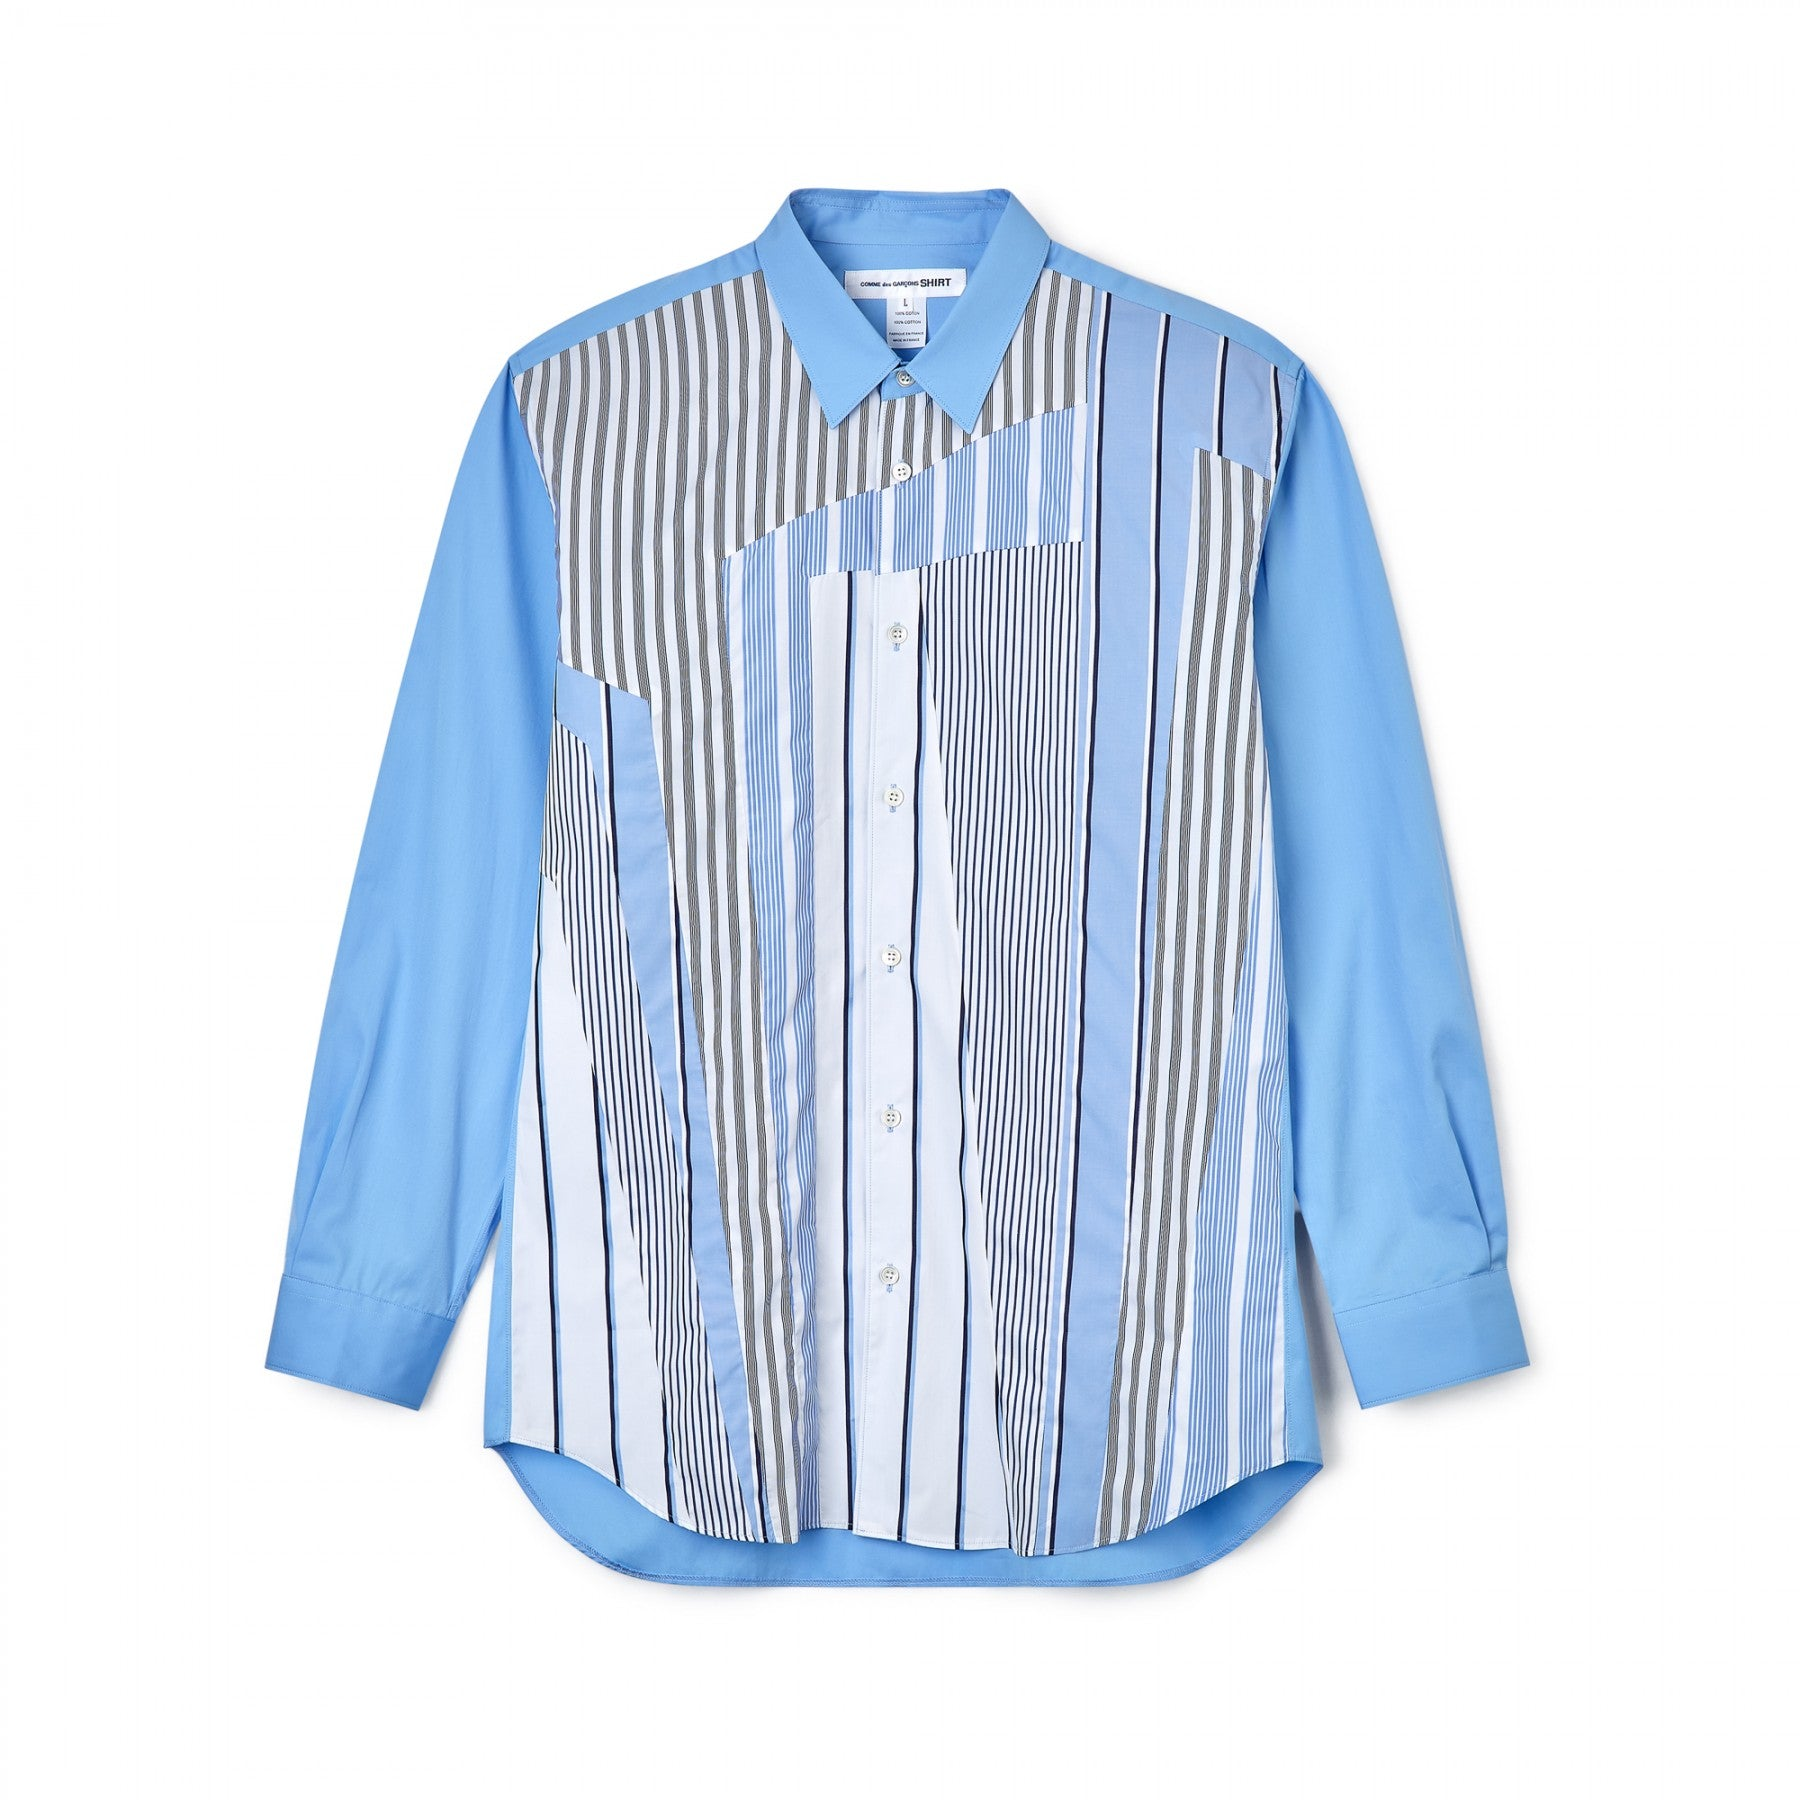 Blue Stripe Shirt TOP COMME DES GARÇONS SHIRT - NOLM - Clothes Online - nolmau.com - Sydney-Australia Online Shopping